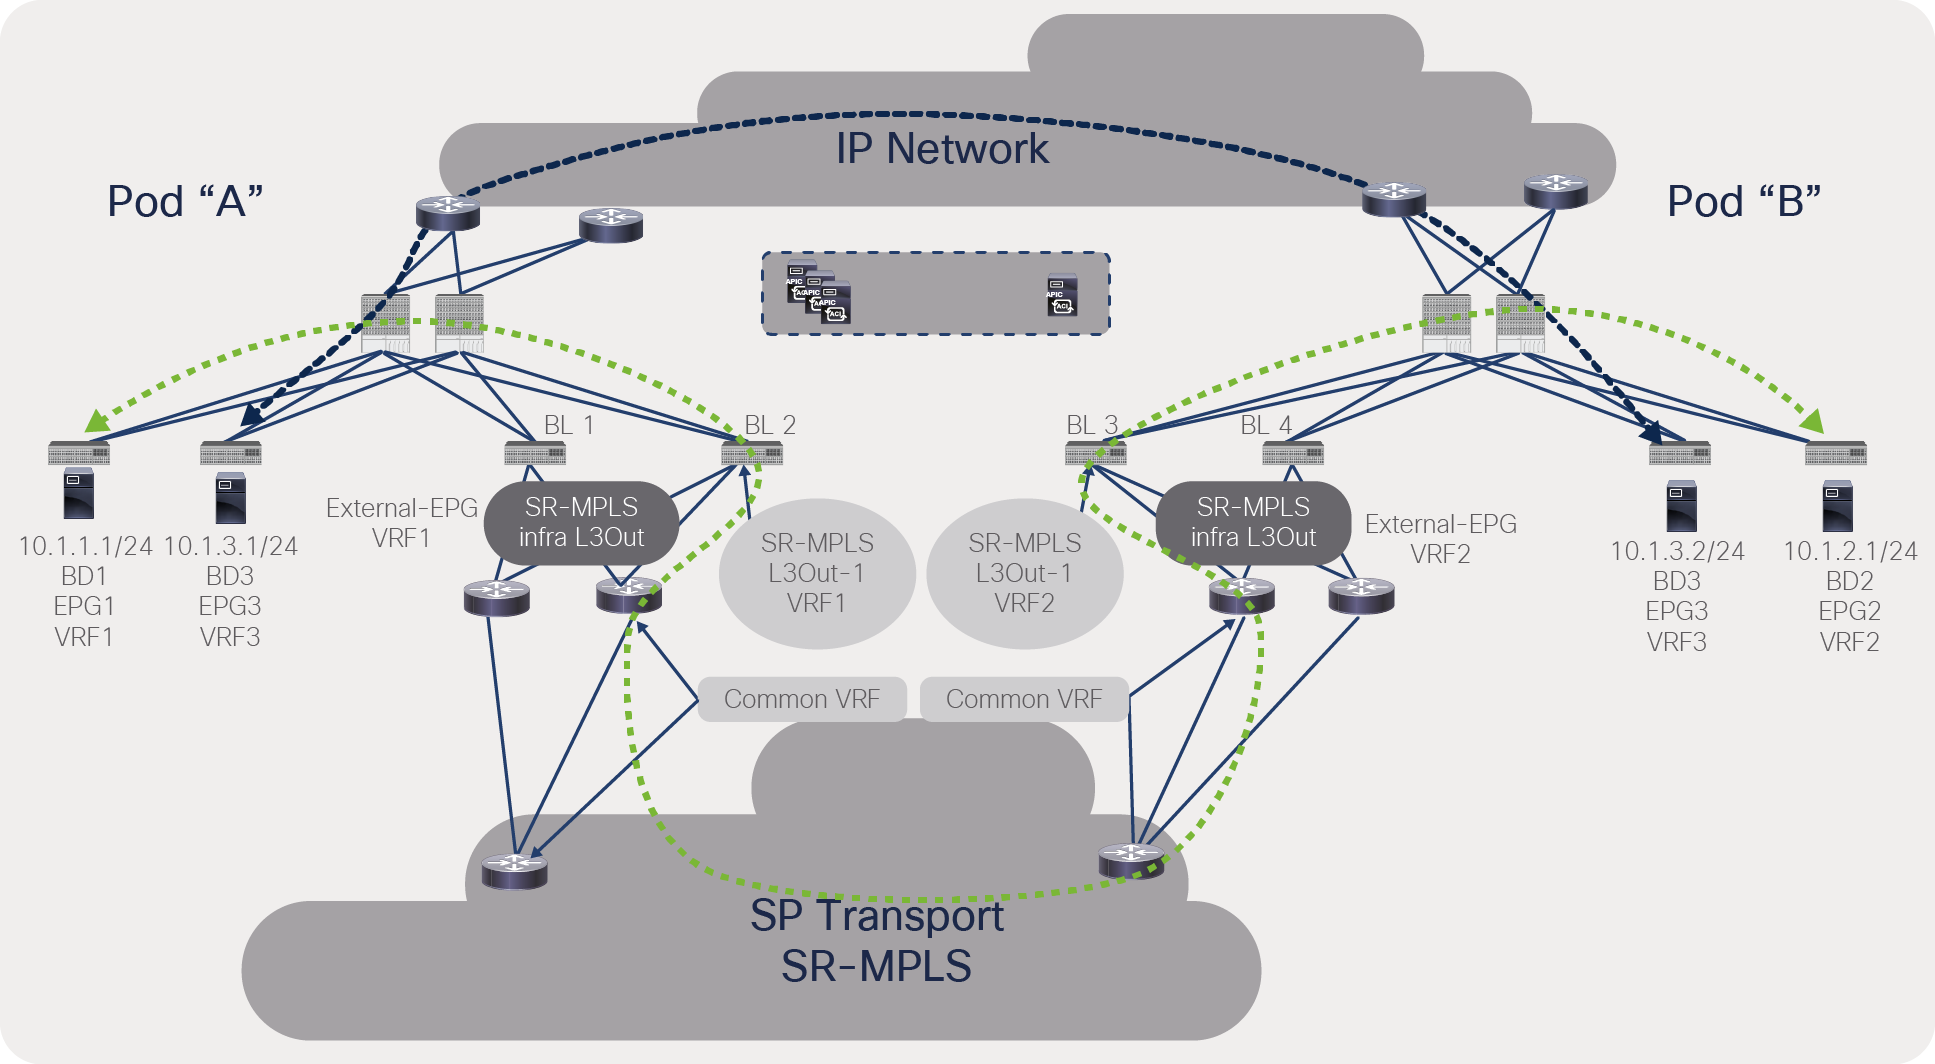 Traffic path selection between IPN and SR/MPLS for a VRF